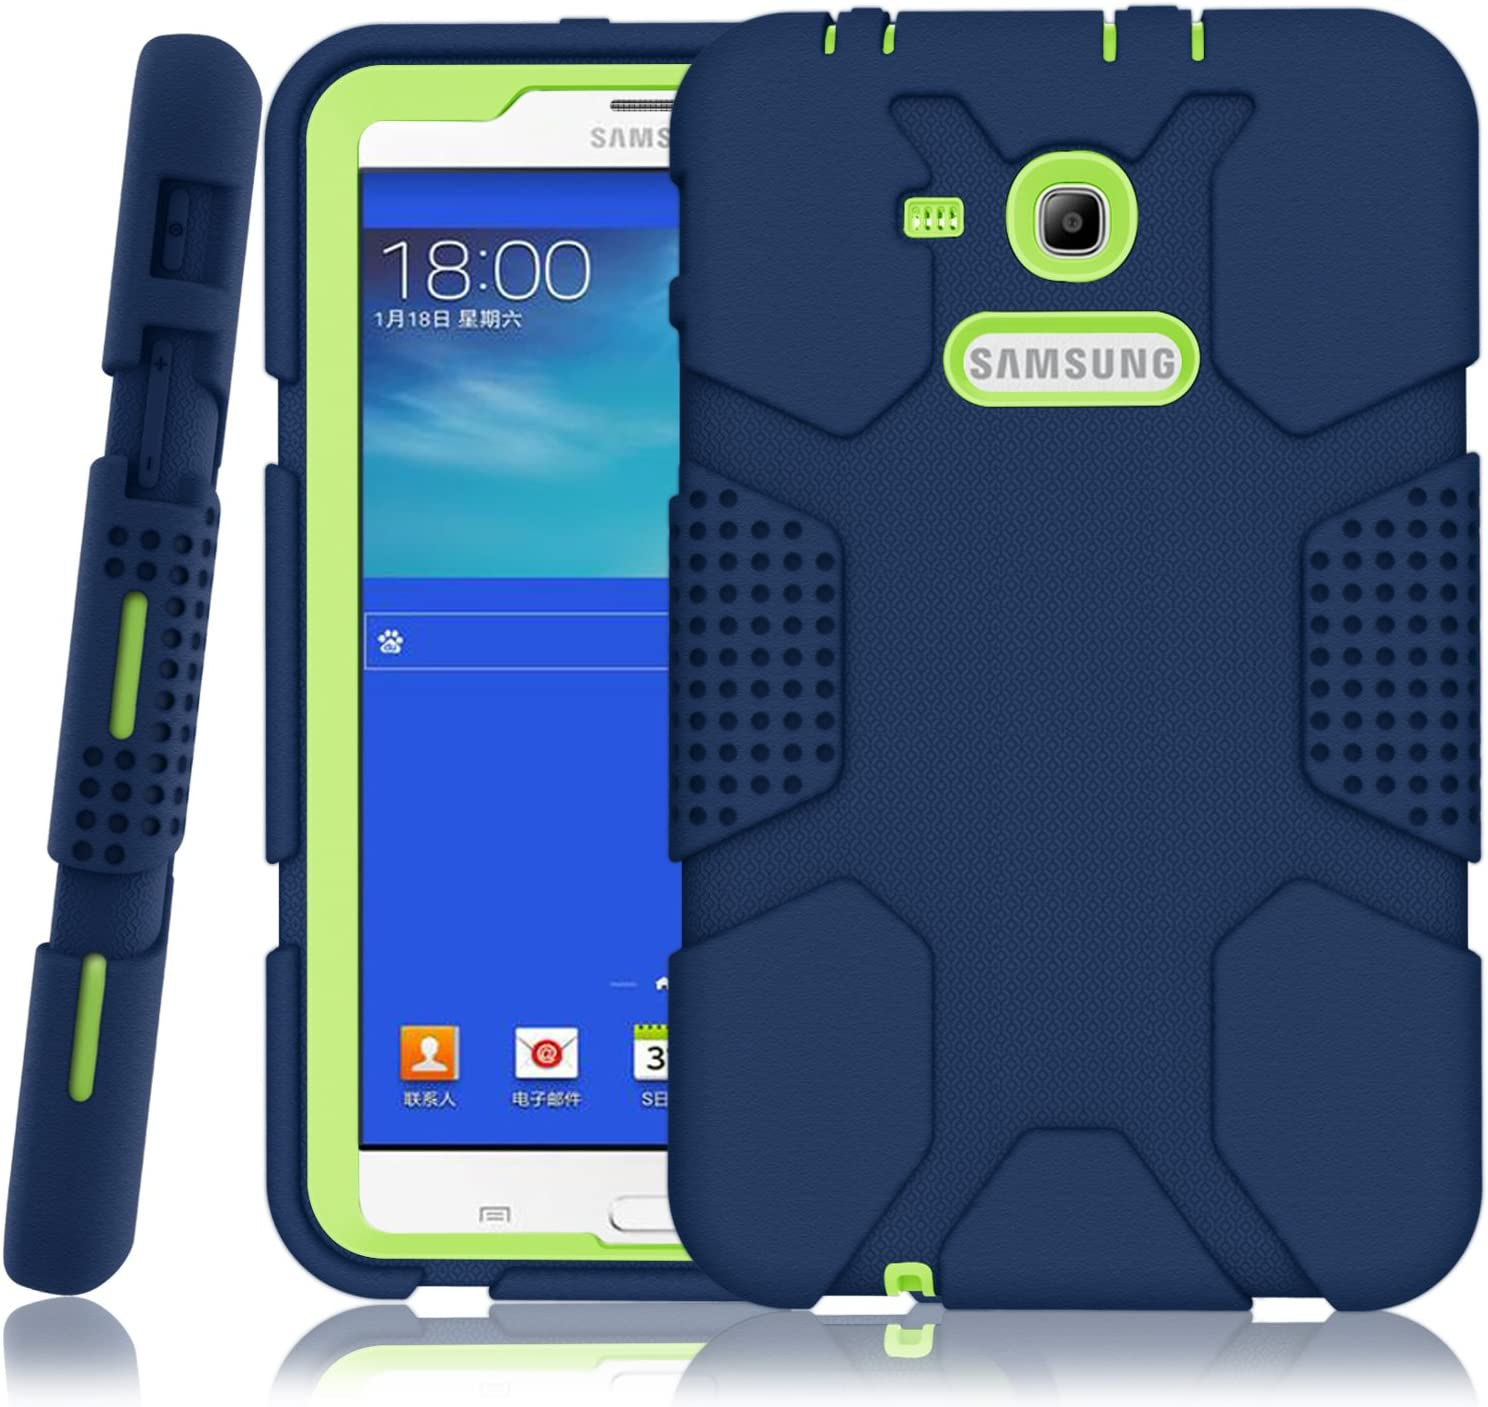 Amazon Com Hocase Galaxy Tab E Lite 7 0 Case Rugged Heavy Duty Kids Proof Protective Case For Galaxy Tab E Lite 7 0 Sm T113ndwaxar Sm T113nykaxar 2016 Navy Blue Lime Green